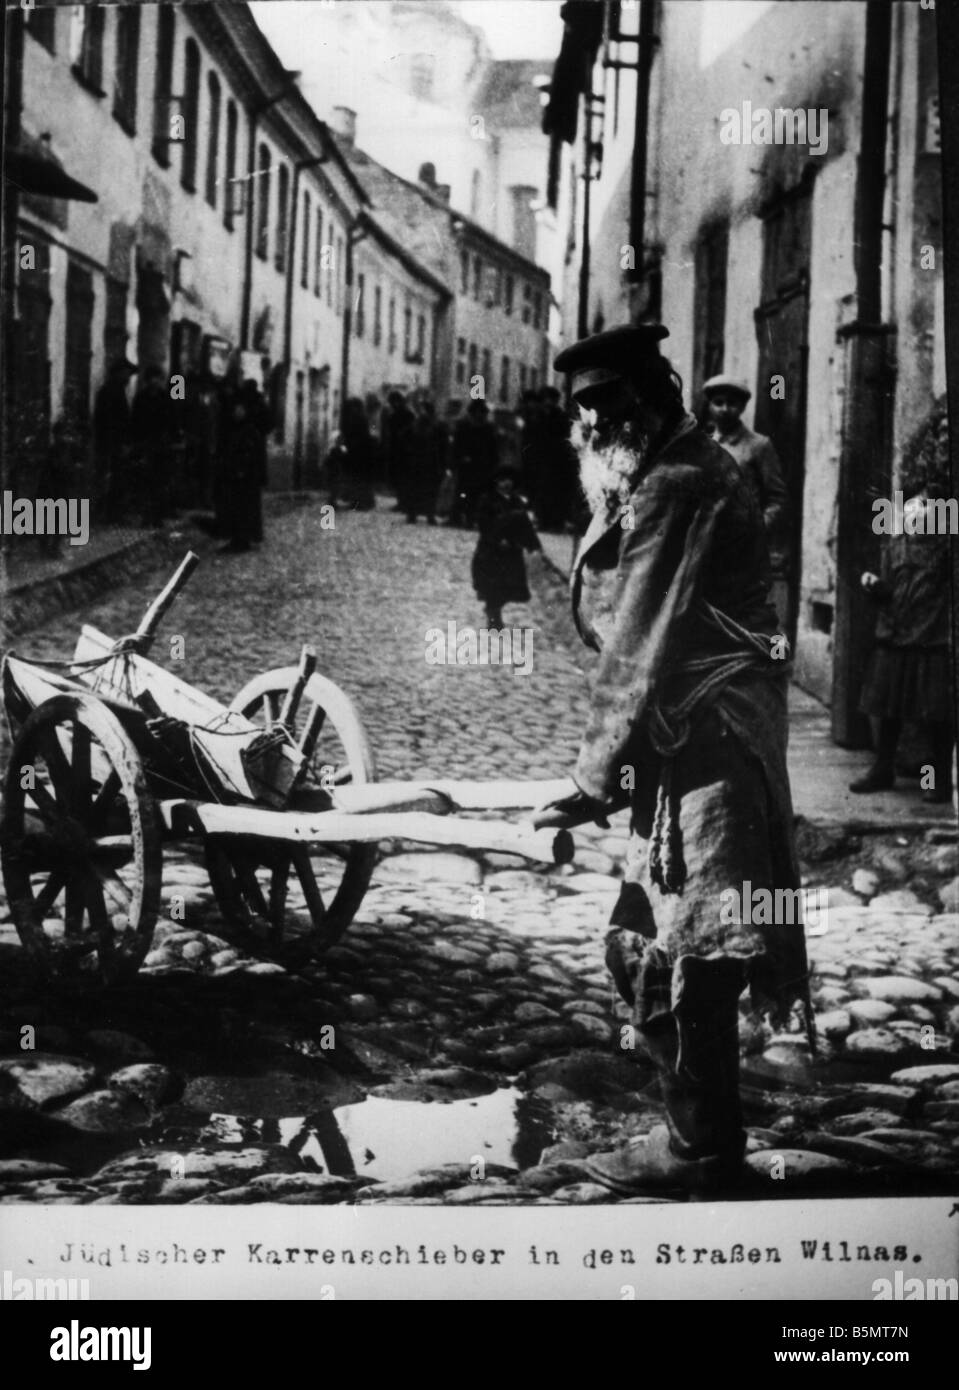 9IS 1915 0 0 A1 4 Jewish cart pusher 1915 History of Judaism Eastern Jews Jewish cart pusher in the streets of Wilna - Stock Image